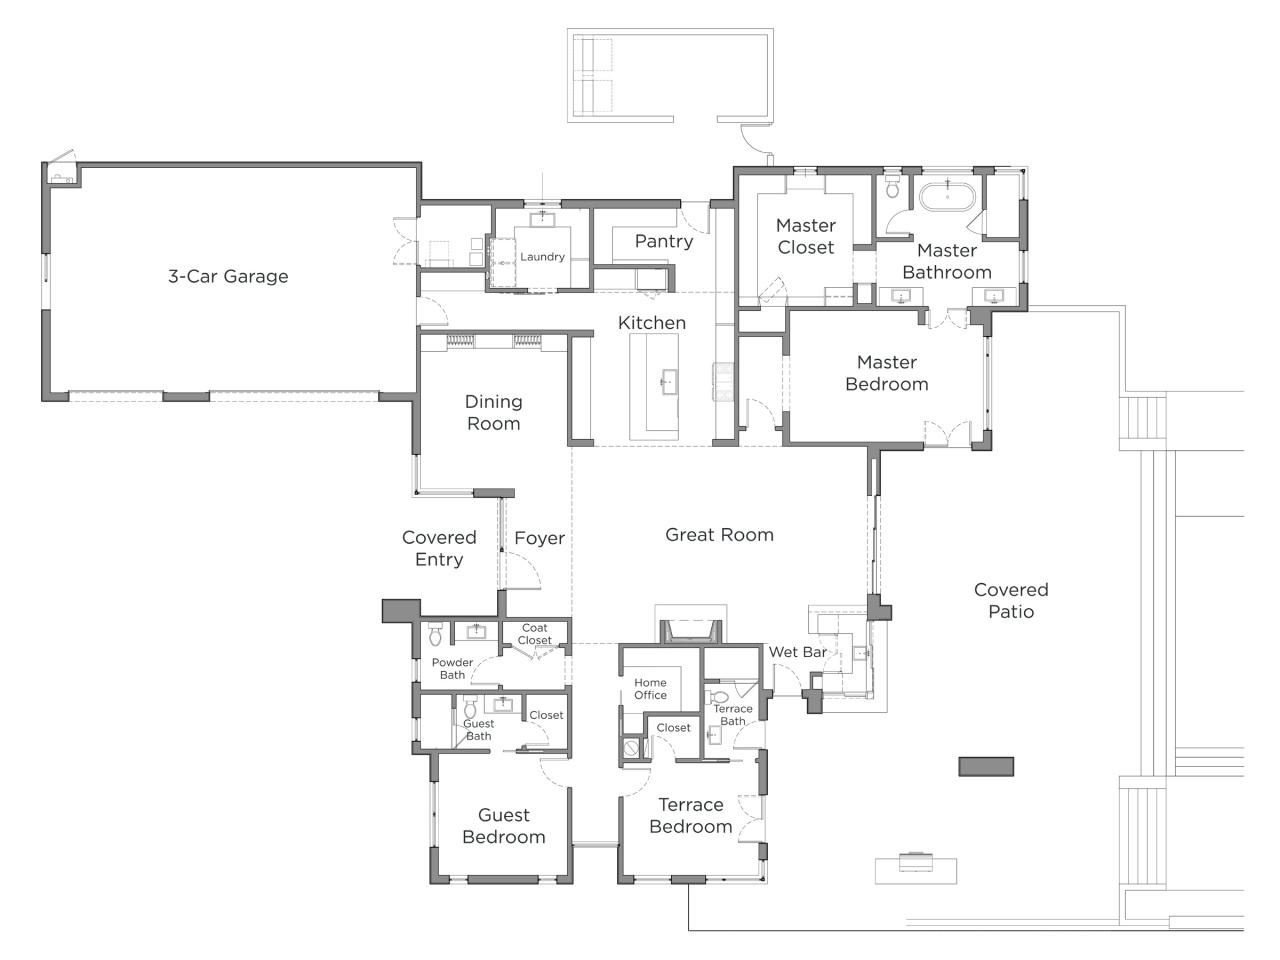 Hgtv Dream Home Floor Plan 2016